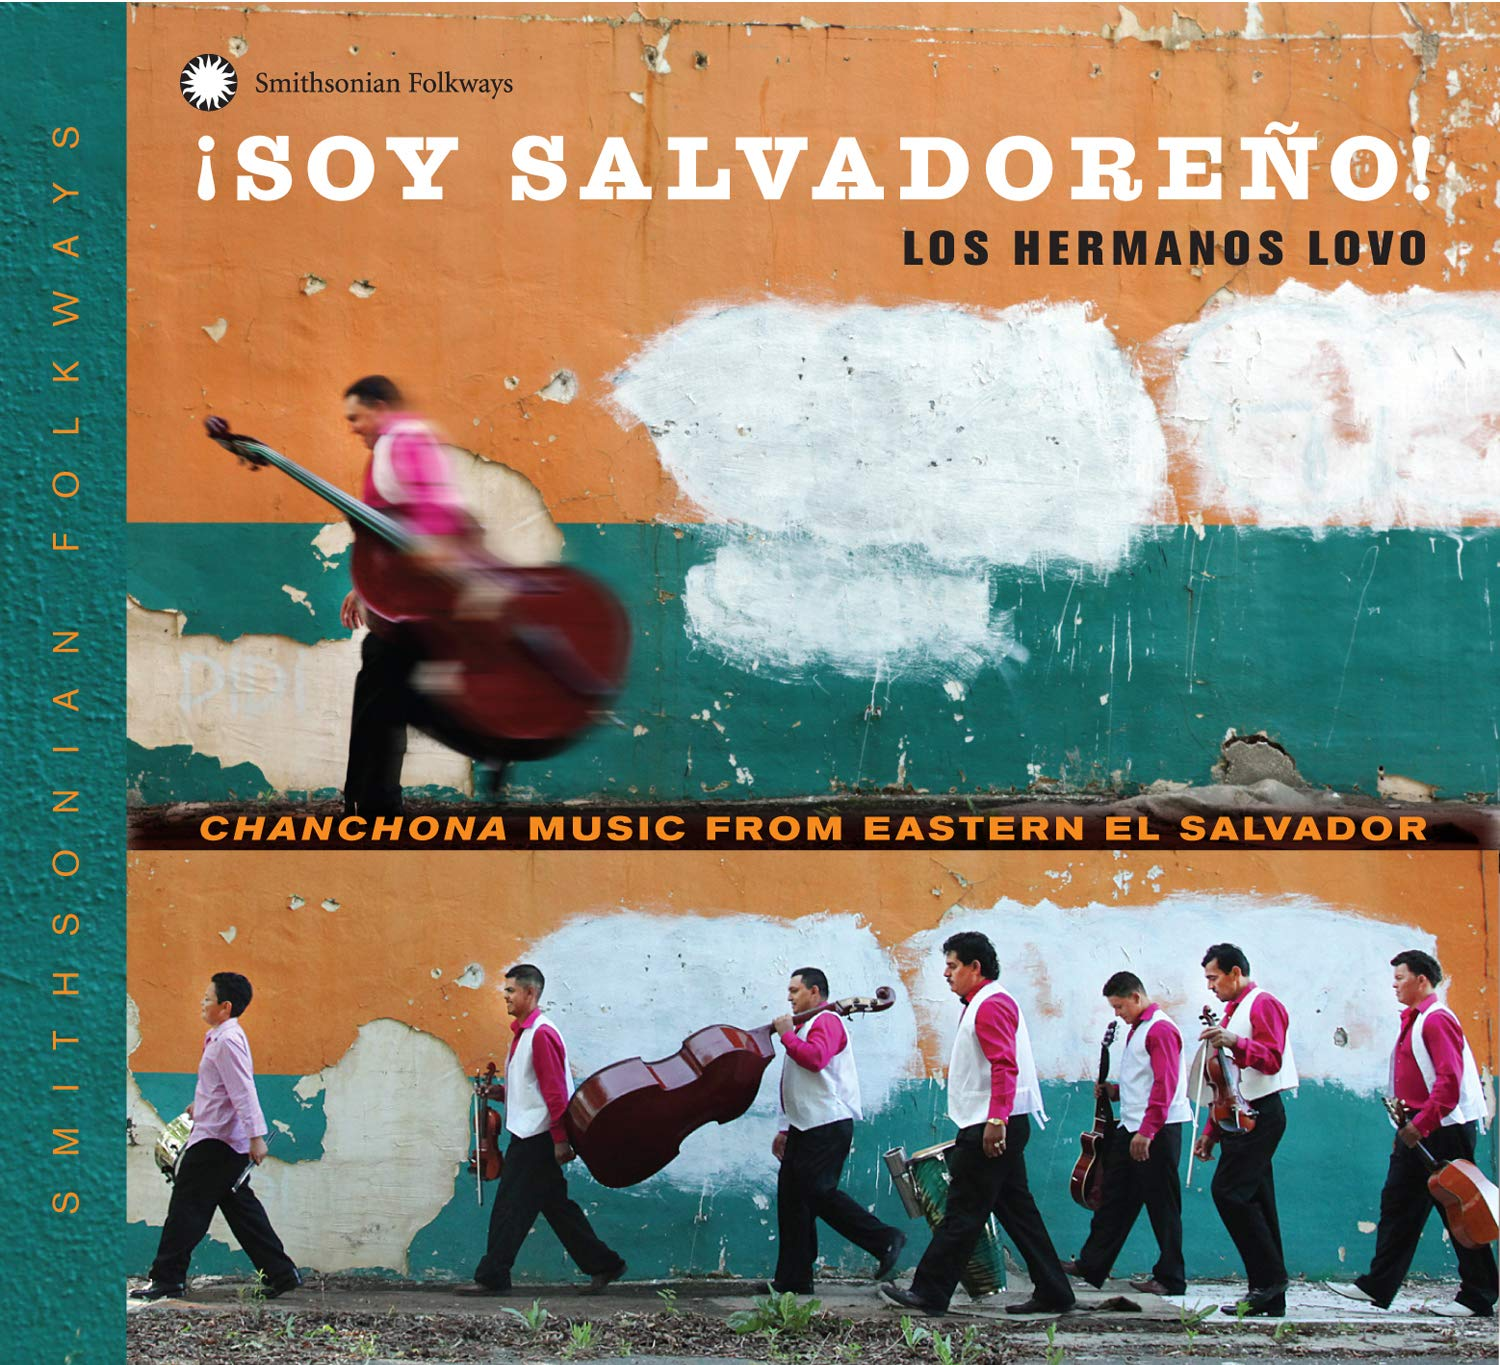 ¡Soy Salvadoreño! Chanchona Music from Eastern El Salvador by Smithsonian Folkways